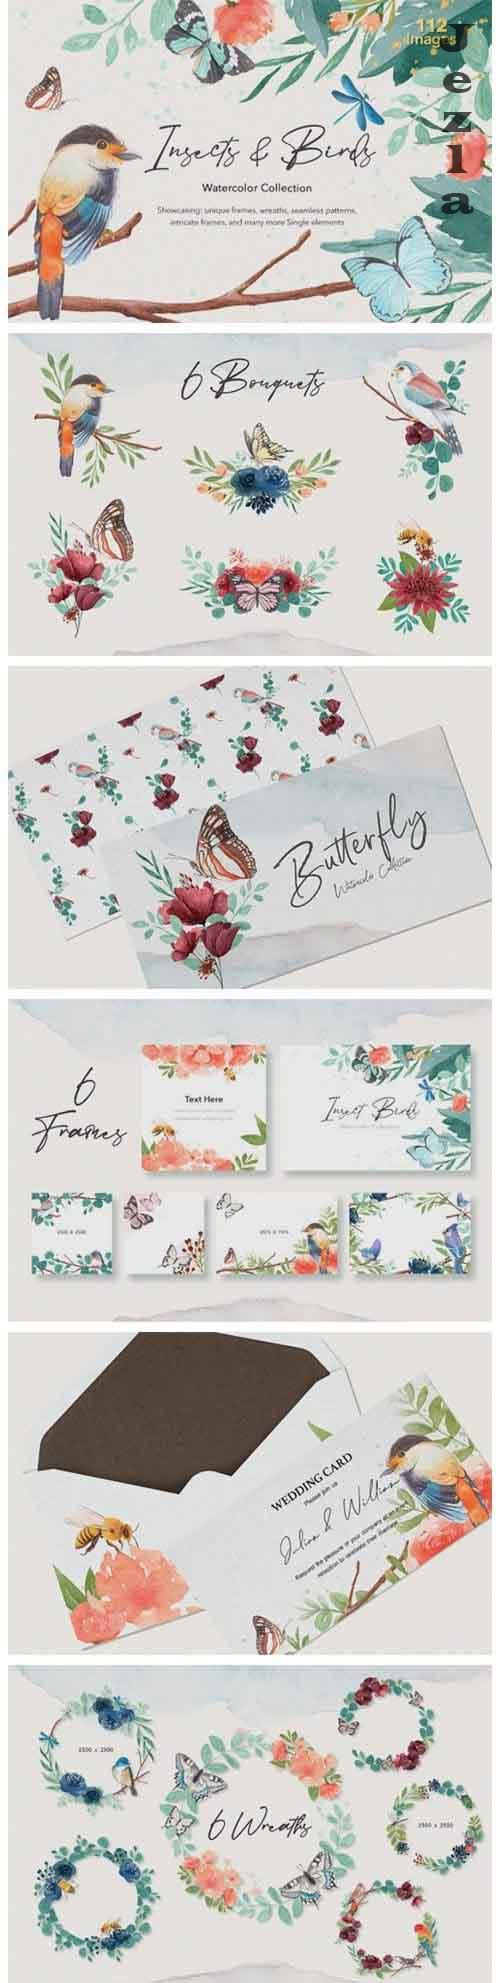 Insects & Birds Watercolor Set - 5504803